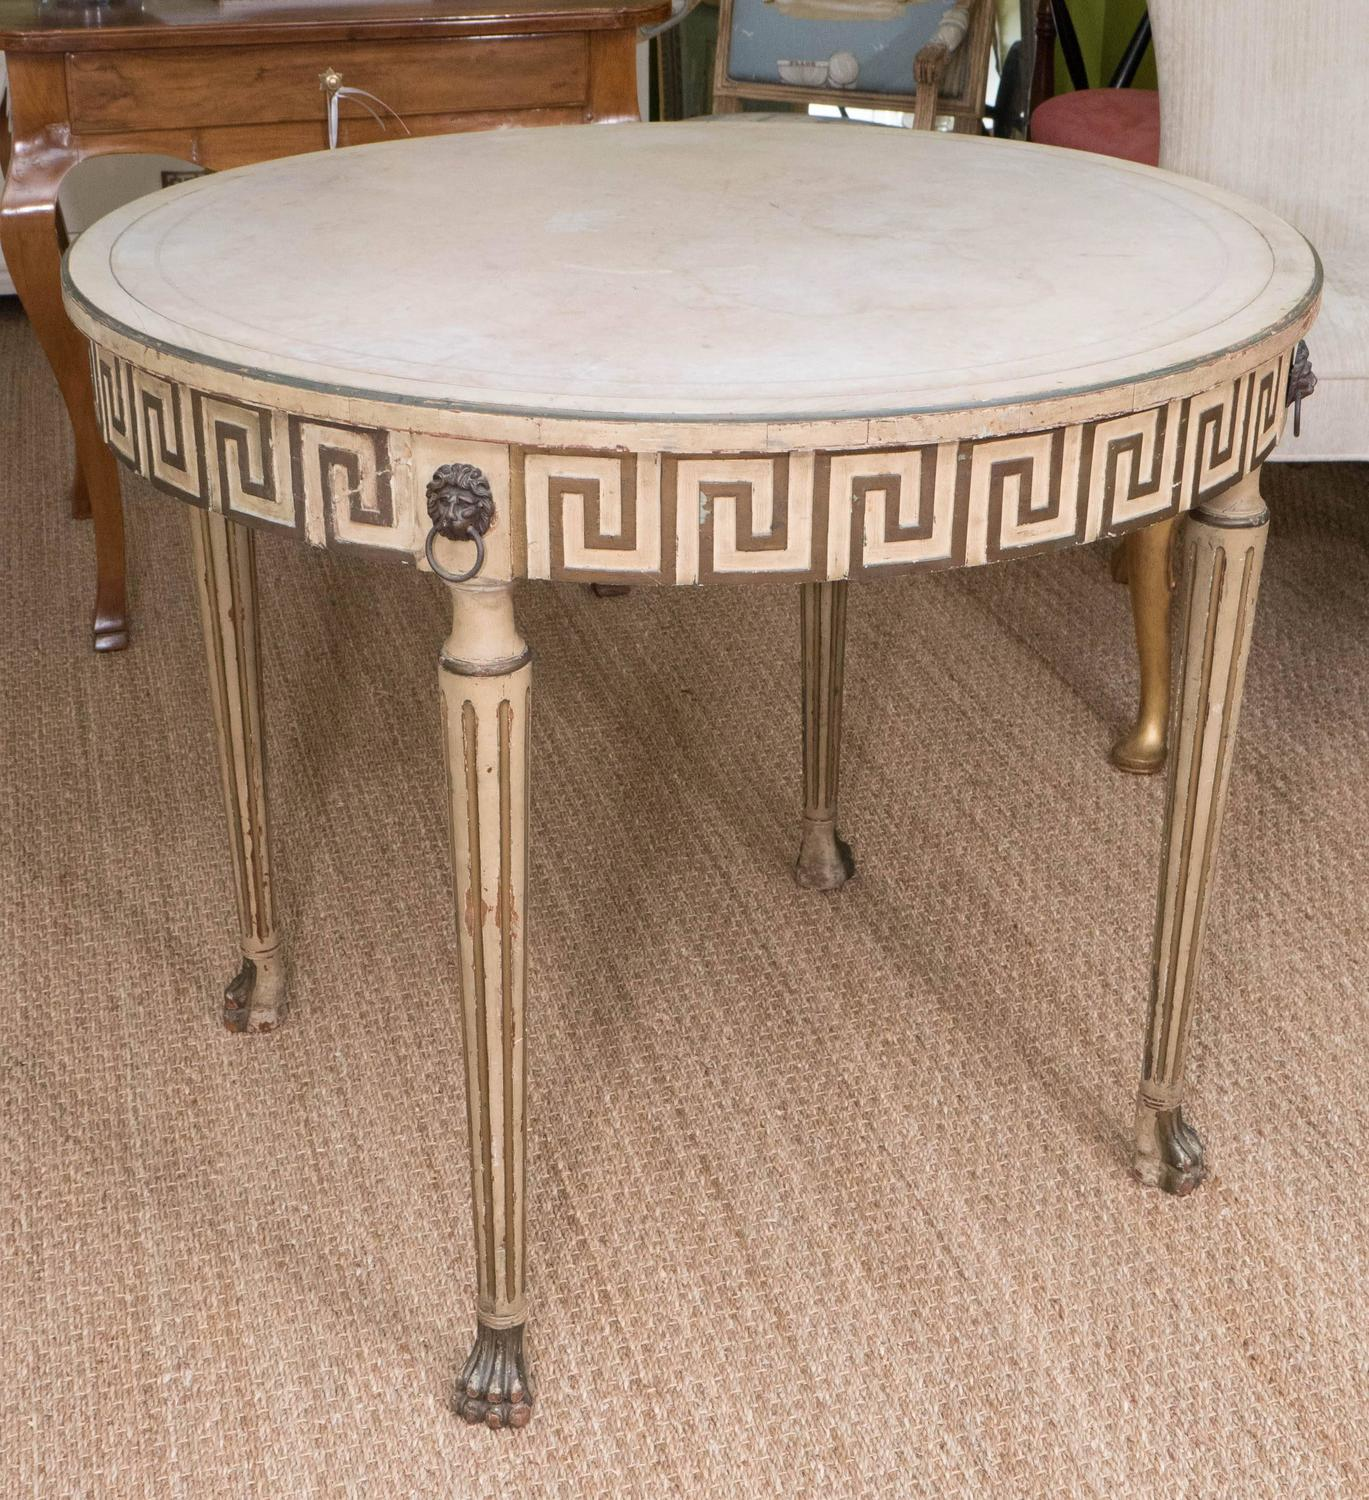 Italian Neoclassical Style Round Table For Sale At 1stdibs